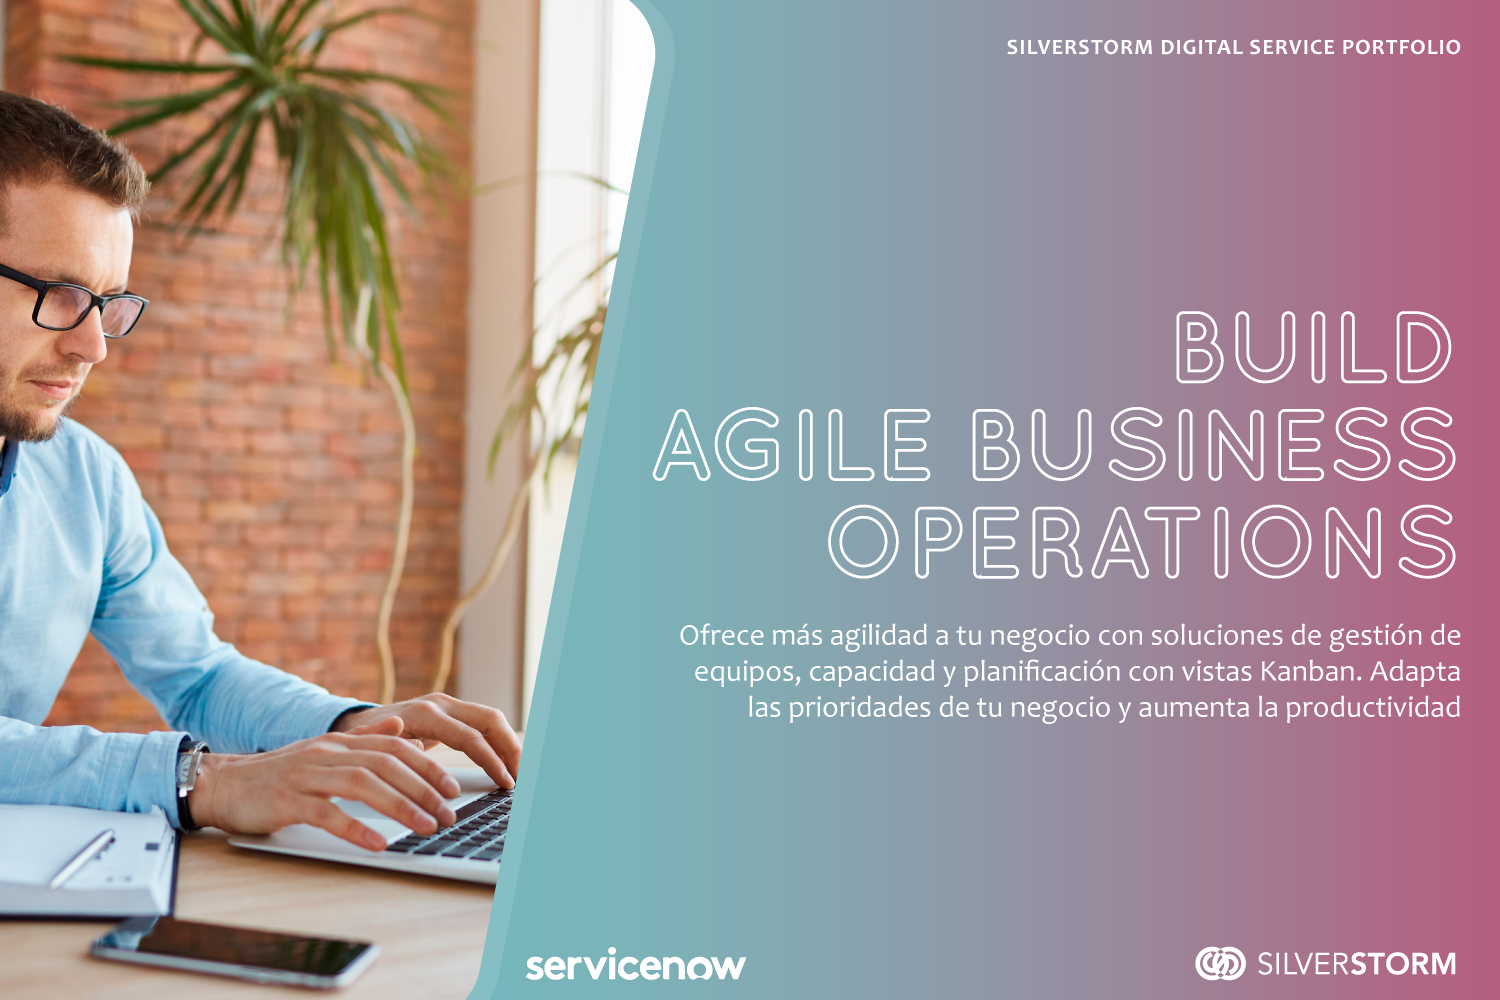 Build Agile Business Operations